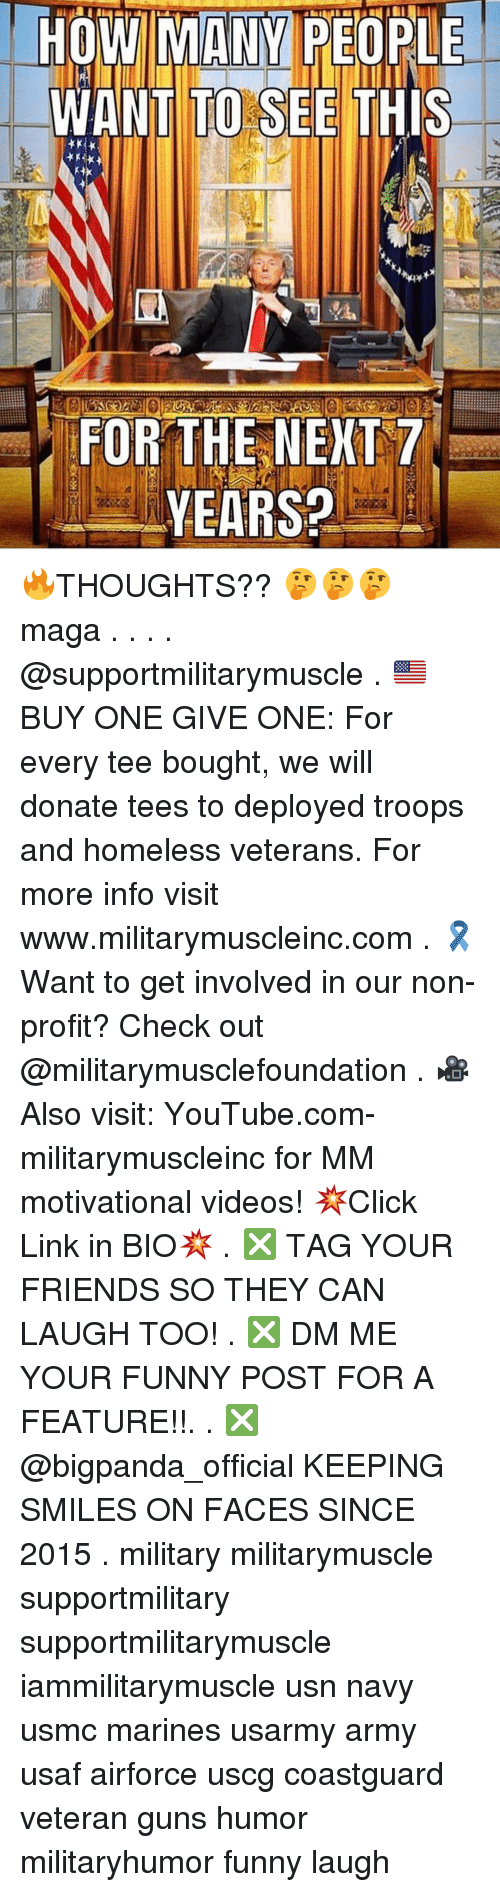 Friends, Funny, and Guns: HOW MANY PEOPLE  WANT TO SEE THIS  K1  FOR THEI EXT 7  YEARS? 🔥THOUGHTS?? 🤔🤔🤔 maga . . . . @supportmilitarymuscle . 🇺🇸BUY ONE GIVE ONE: For every tee bought, we will donate tees to deployed troops and homeless veterans. For more info visit www.militarymuscleinc.com . 🎗Want to get involved in our non-profit? Check out @militarymusclefoundation . 🎥Also visit: YouTube.com-militarymuscleinc for MM motivational videos! 💥Click Link in BIO💥 . ❎ TAG YOUR FRIENDS SO THEY CAN LAUGH TOO! . ❎ DM ME YOUR FUNNY POST FOR A FEATURE!!. . ❎ @bigpanda_official KEEPING SMILES ON FACES SINCE 2015 . military militarymuscle supportmilitary supportmilitarymuscle iammilitarymuscle usn navy usmc marines usarmy army usaf airforce uscg coastguard veteran guns humor militaryhumor funny laugh